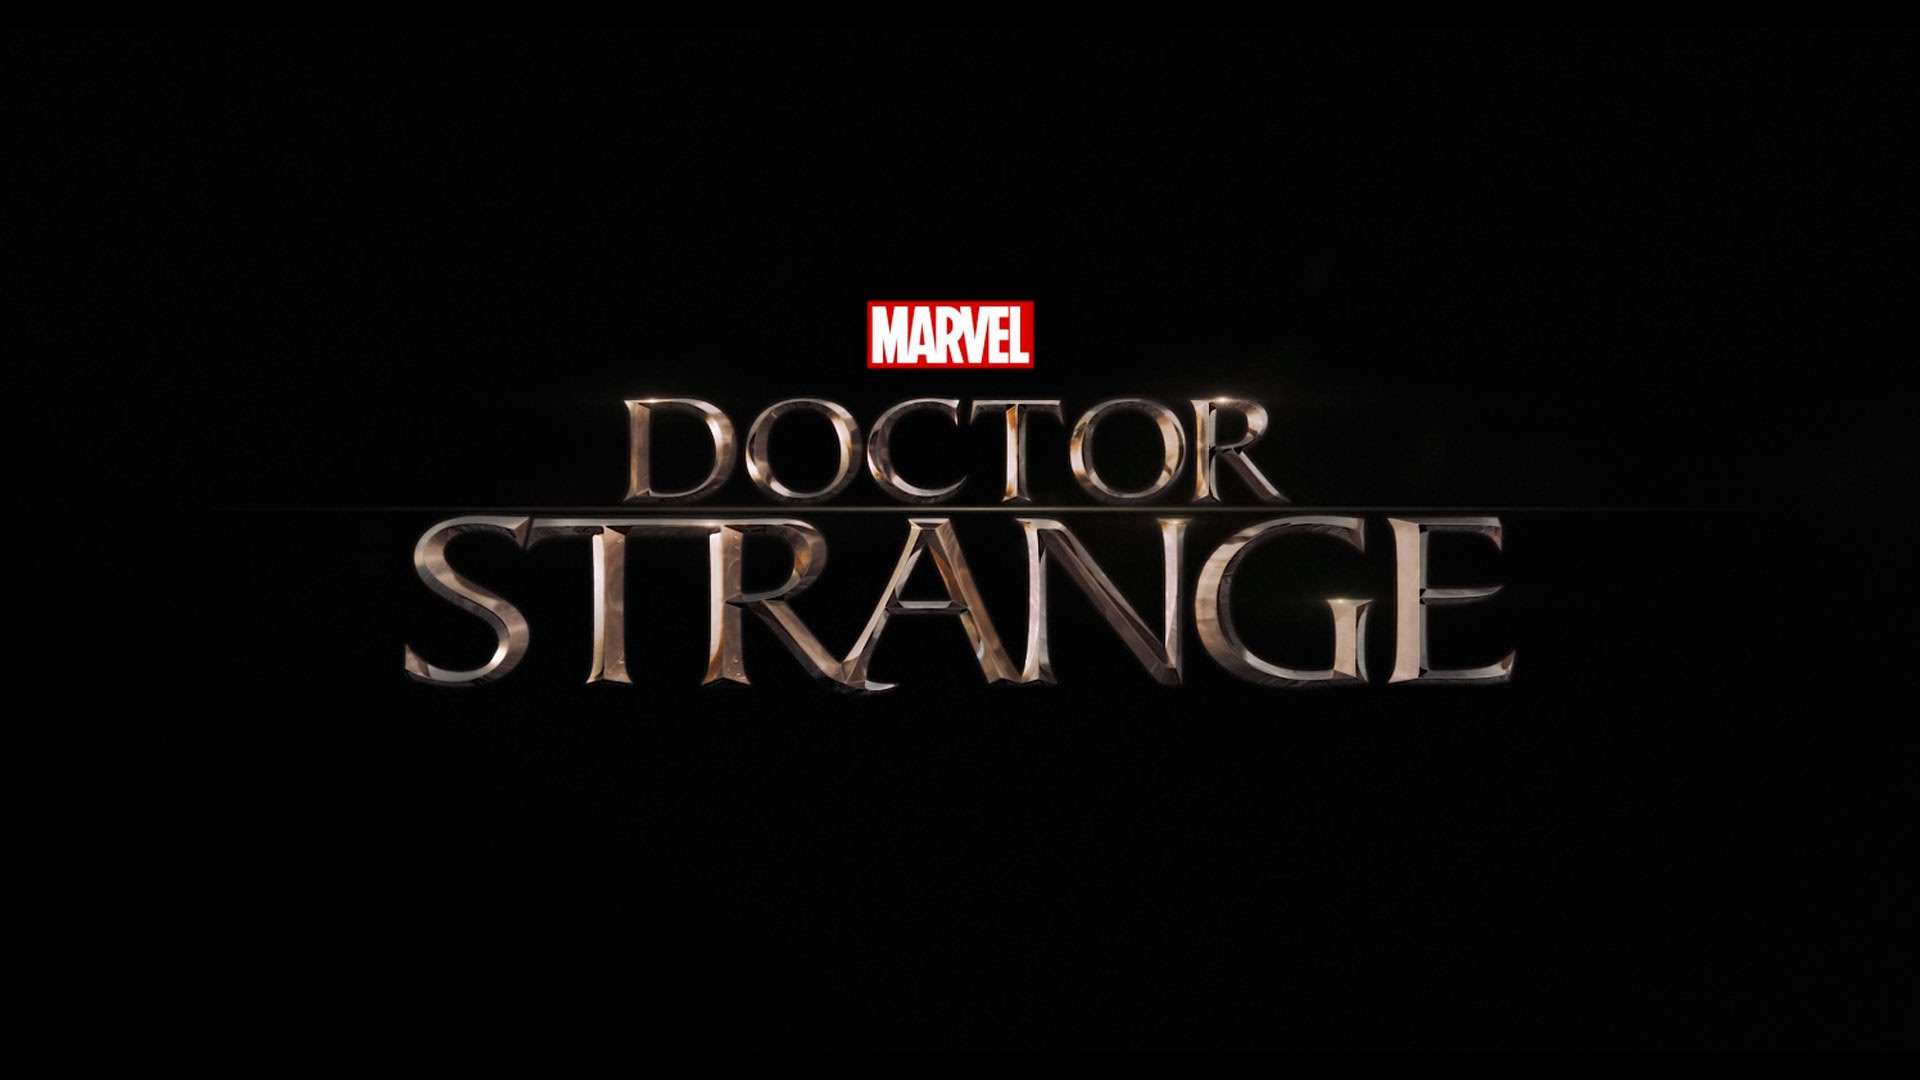 Doctor Strange: Based on the Marvel Comics character, this film promises to have the same high quality found in the likes of other Marvel Cinematic Universe films, such as Iron Man and Guardians of the Galaxy, with phenomenal visuals, incredible action, and a star-studded cast, featuring the likes of Benedict Cumberbatch, Tilda Swinton, and Chiwetel Ejiofor. This will be another fun and exciting feature from Marvel Studios, so don't miss it when it comes to cinemas November 4th.